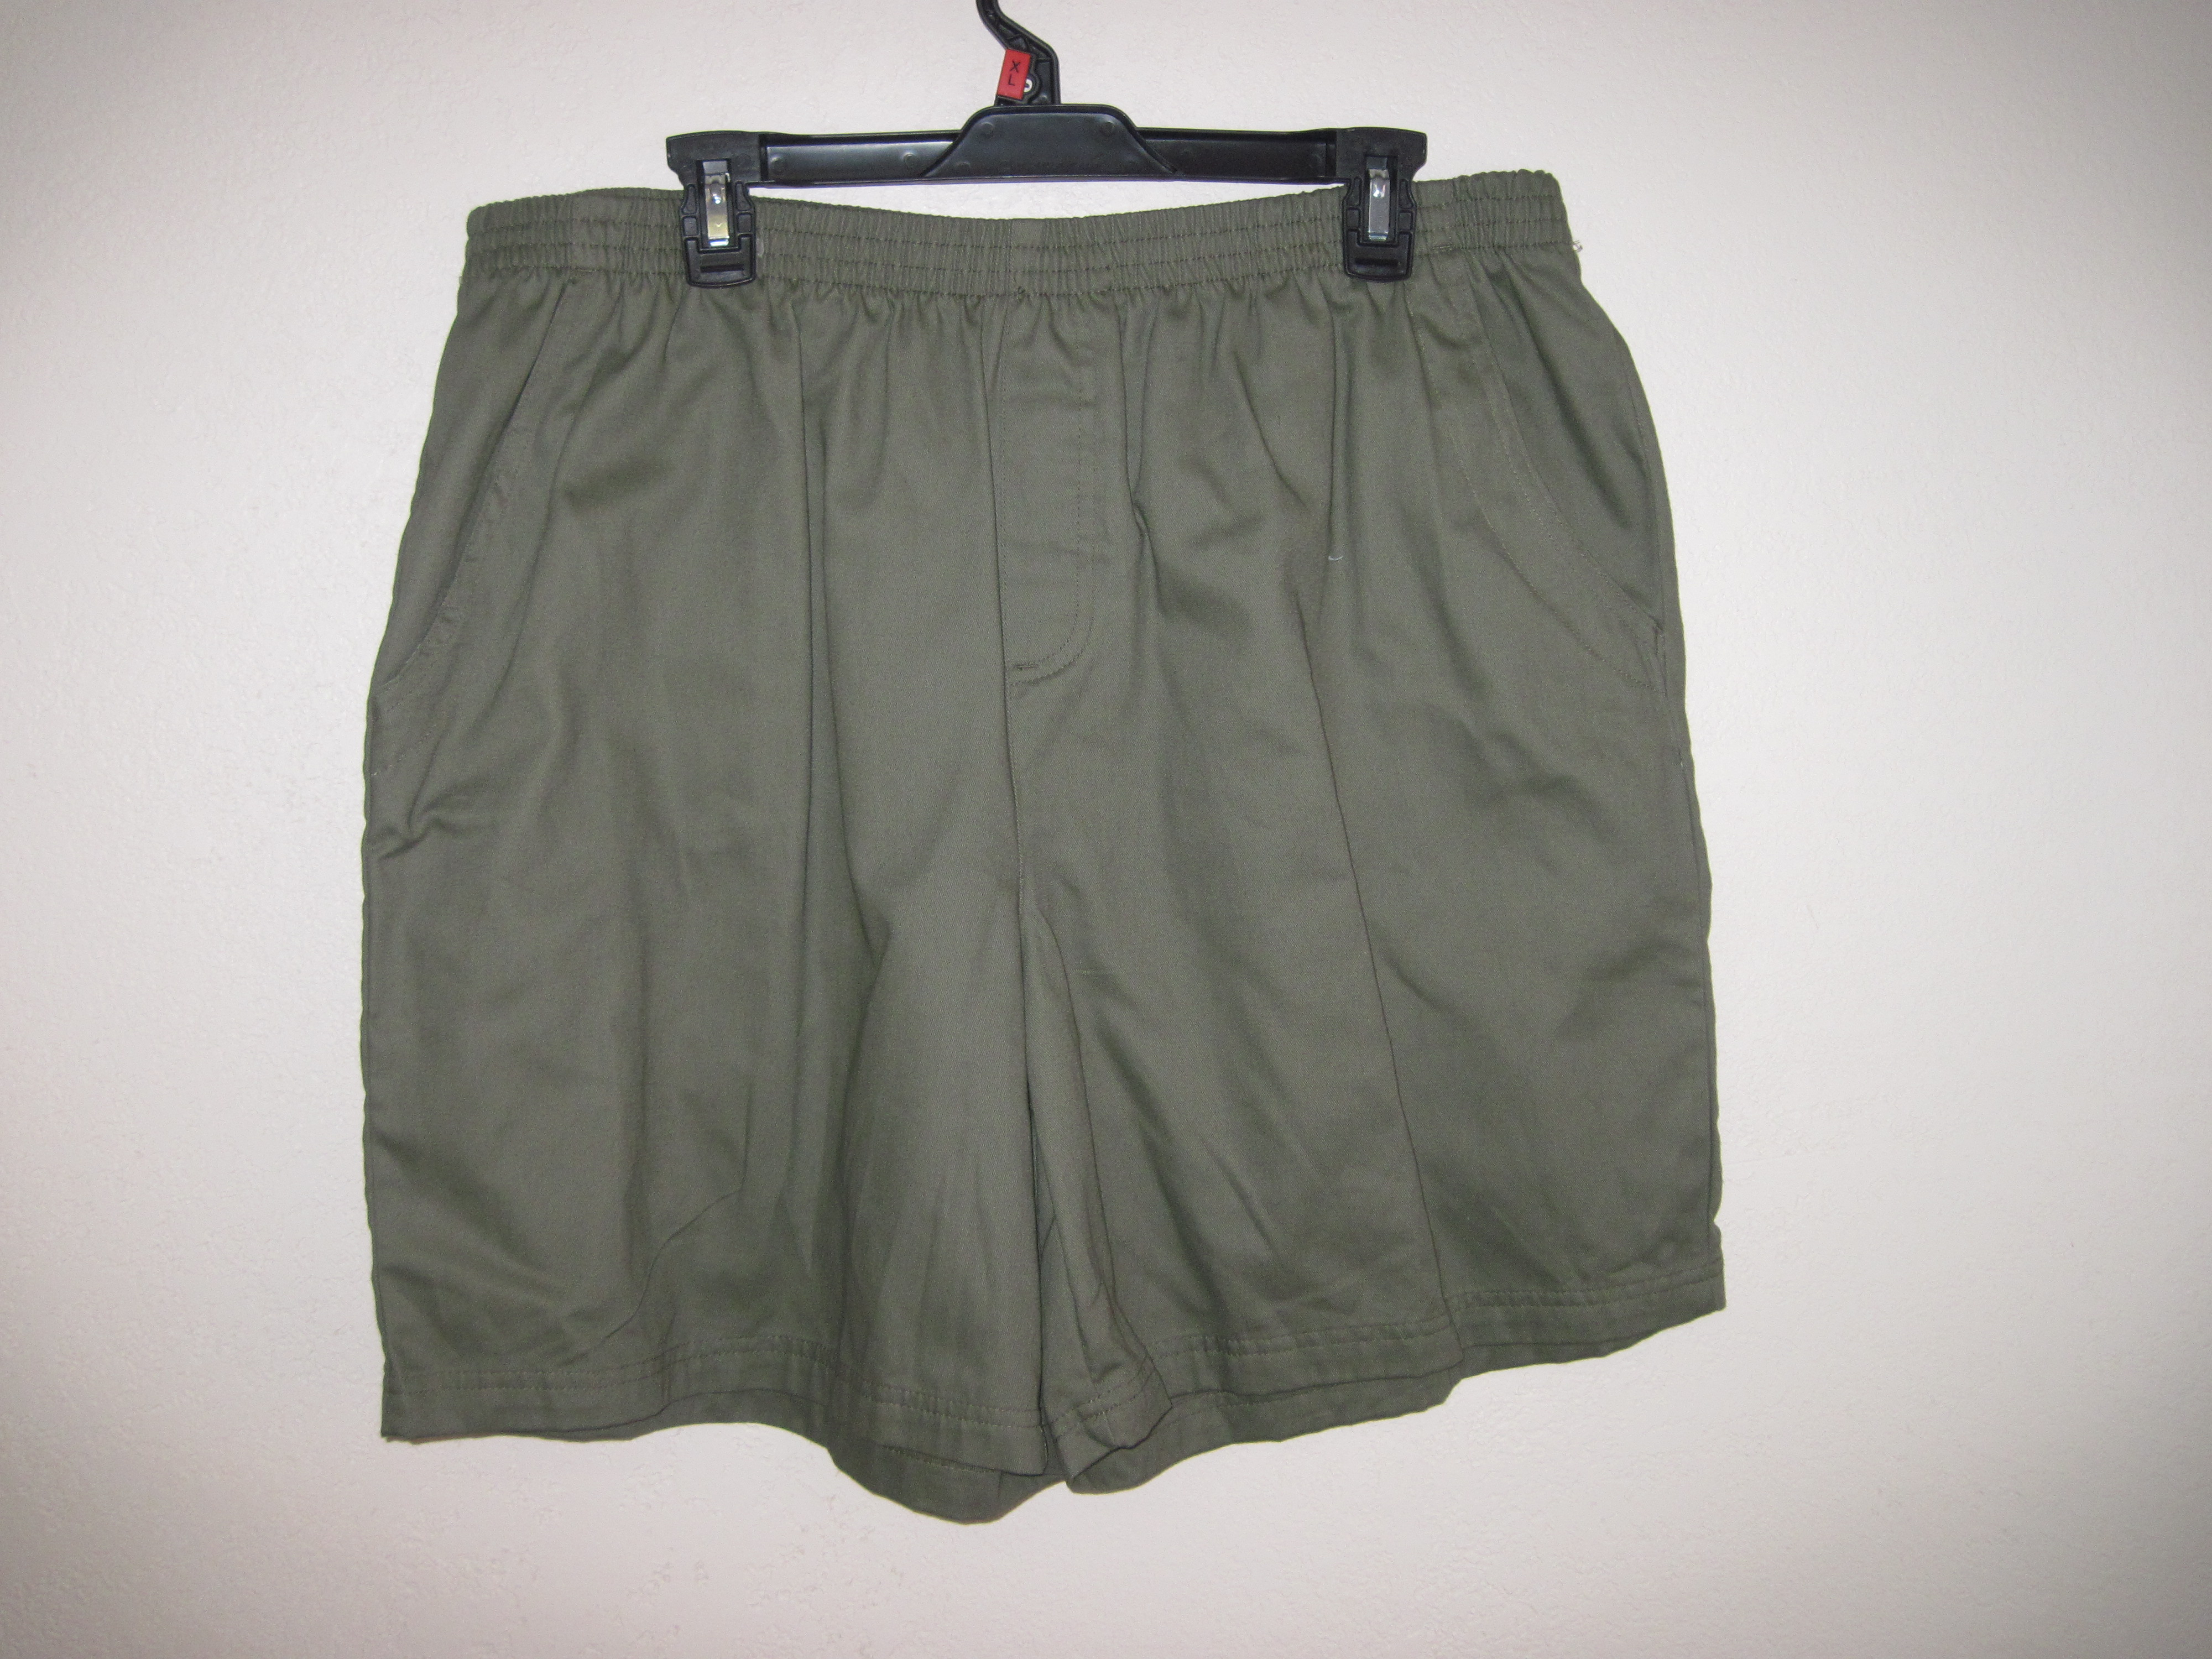 Basic Editions Sz XL Pull On Twill Shorts ( olive green)